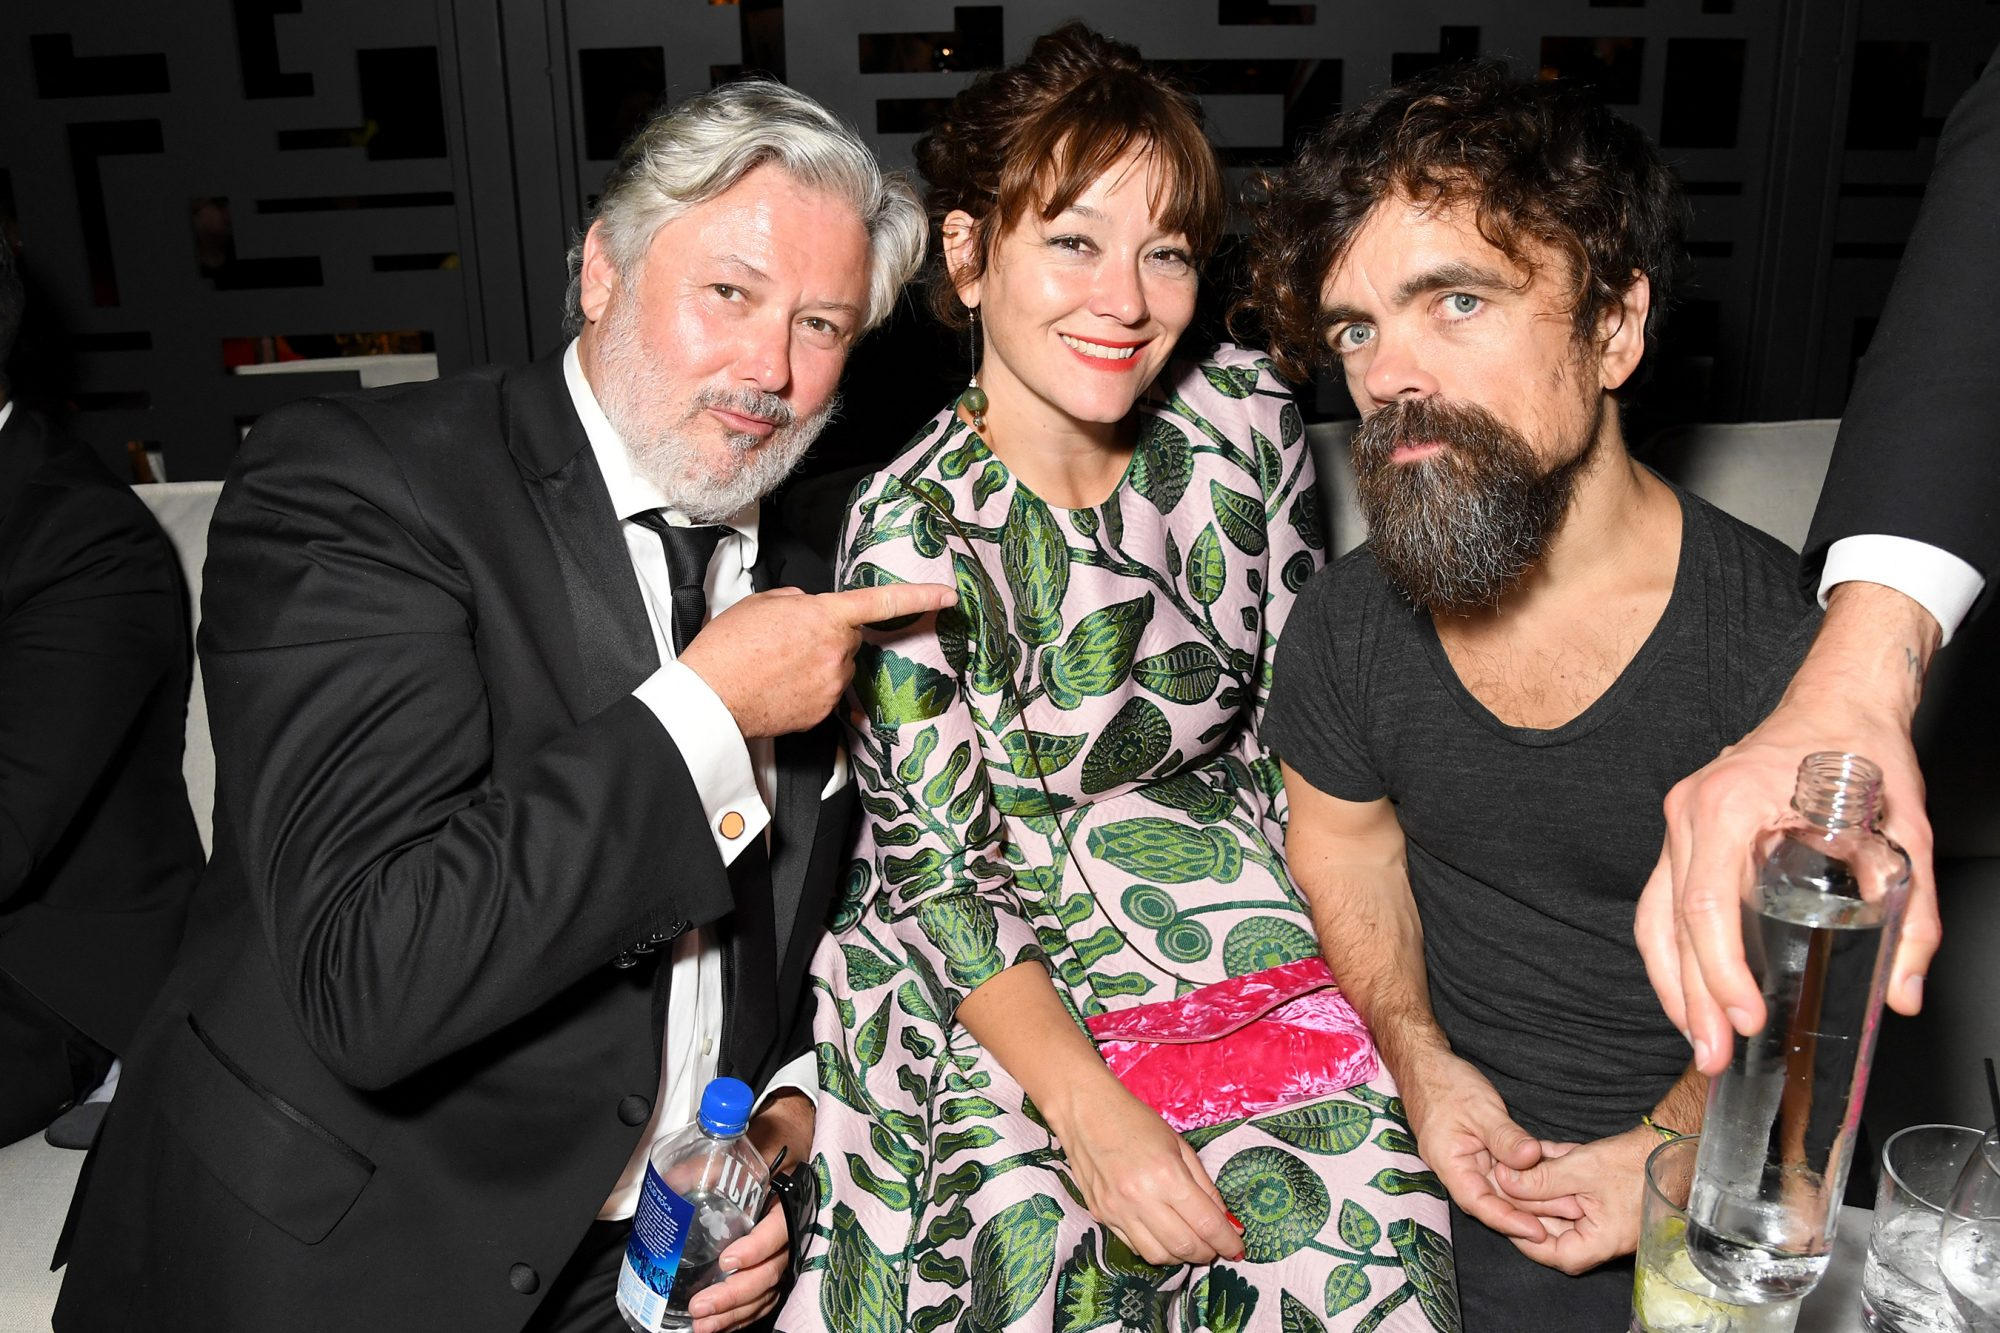 Conleth Hill, Erica Schmidt and Peter Dinklage